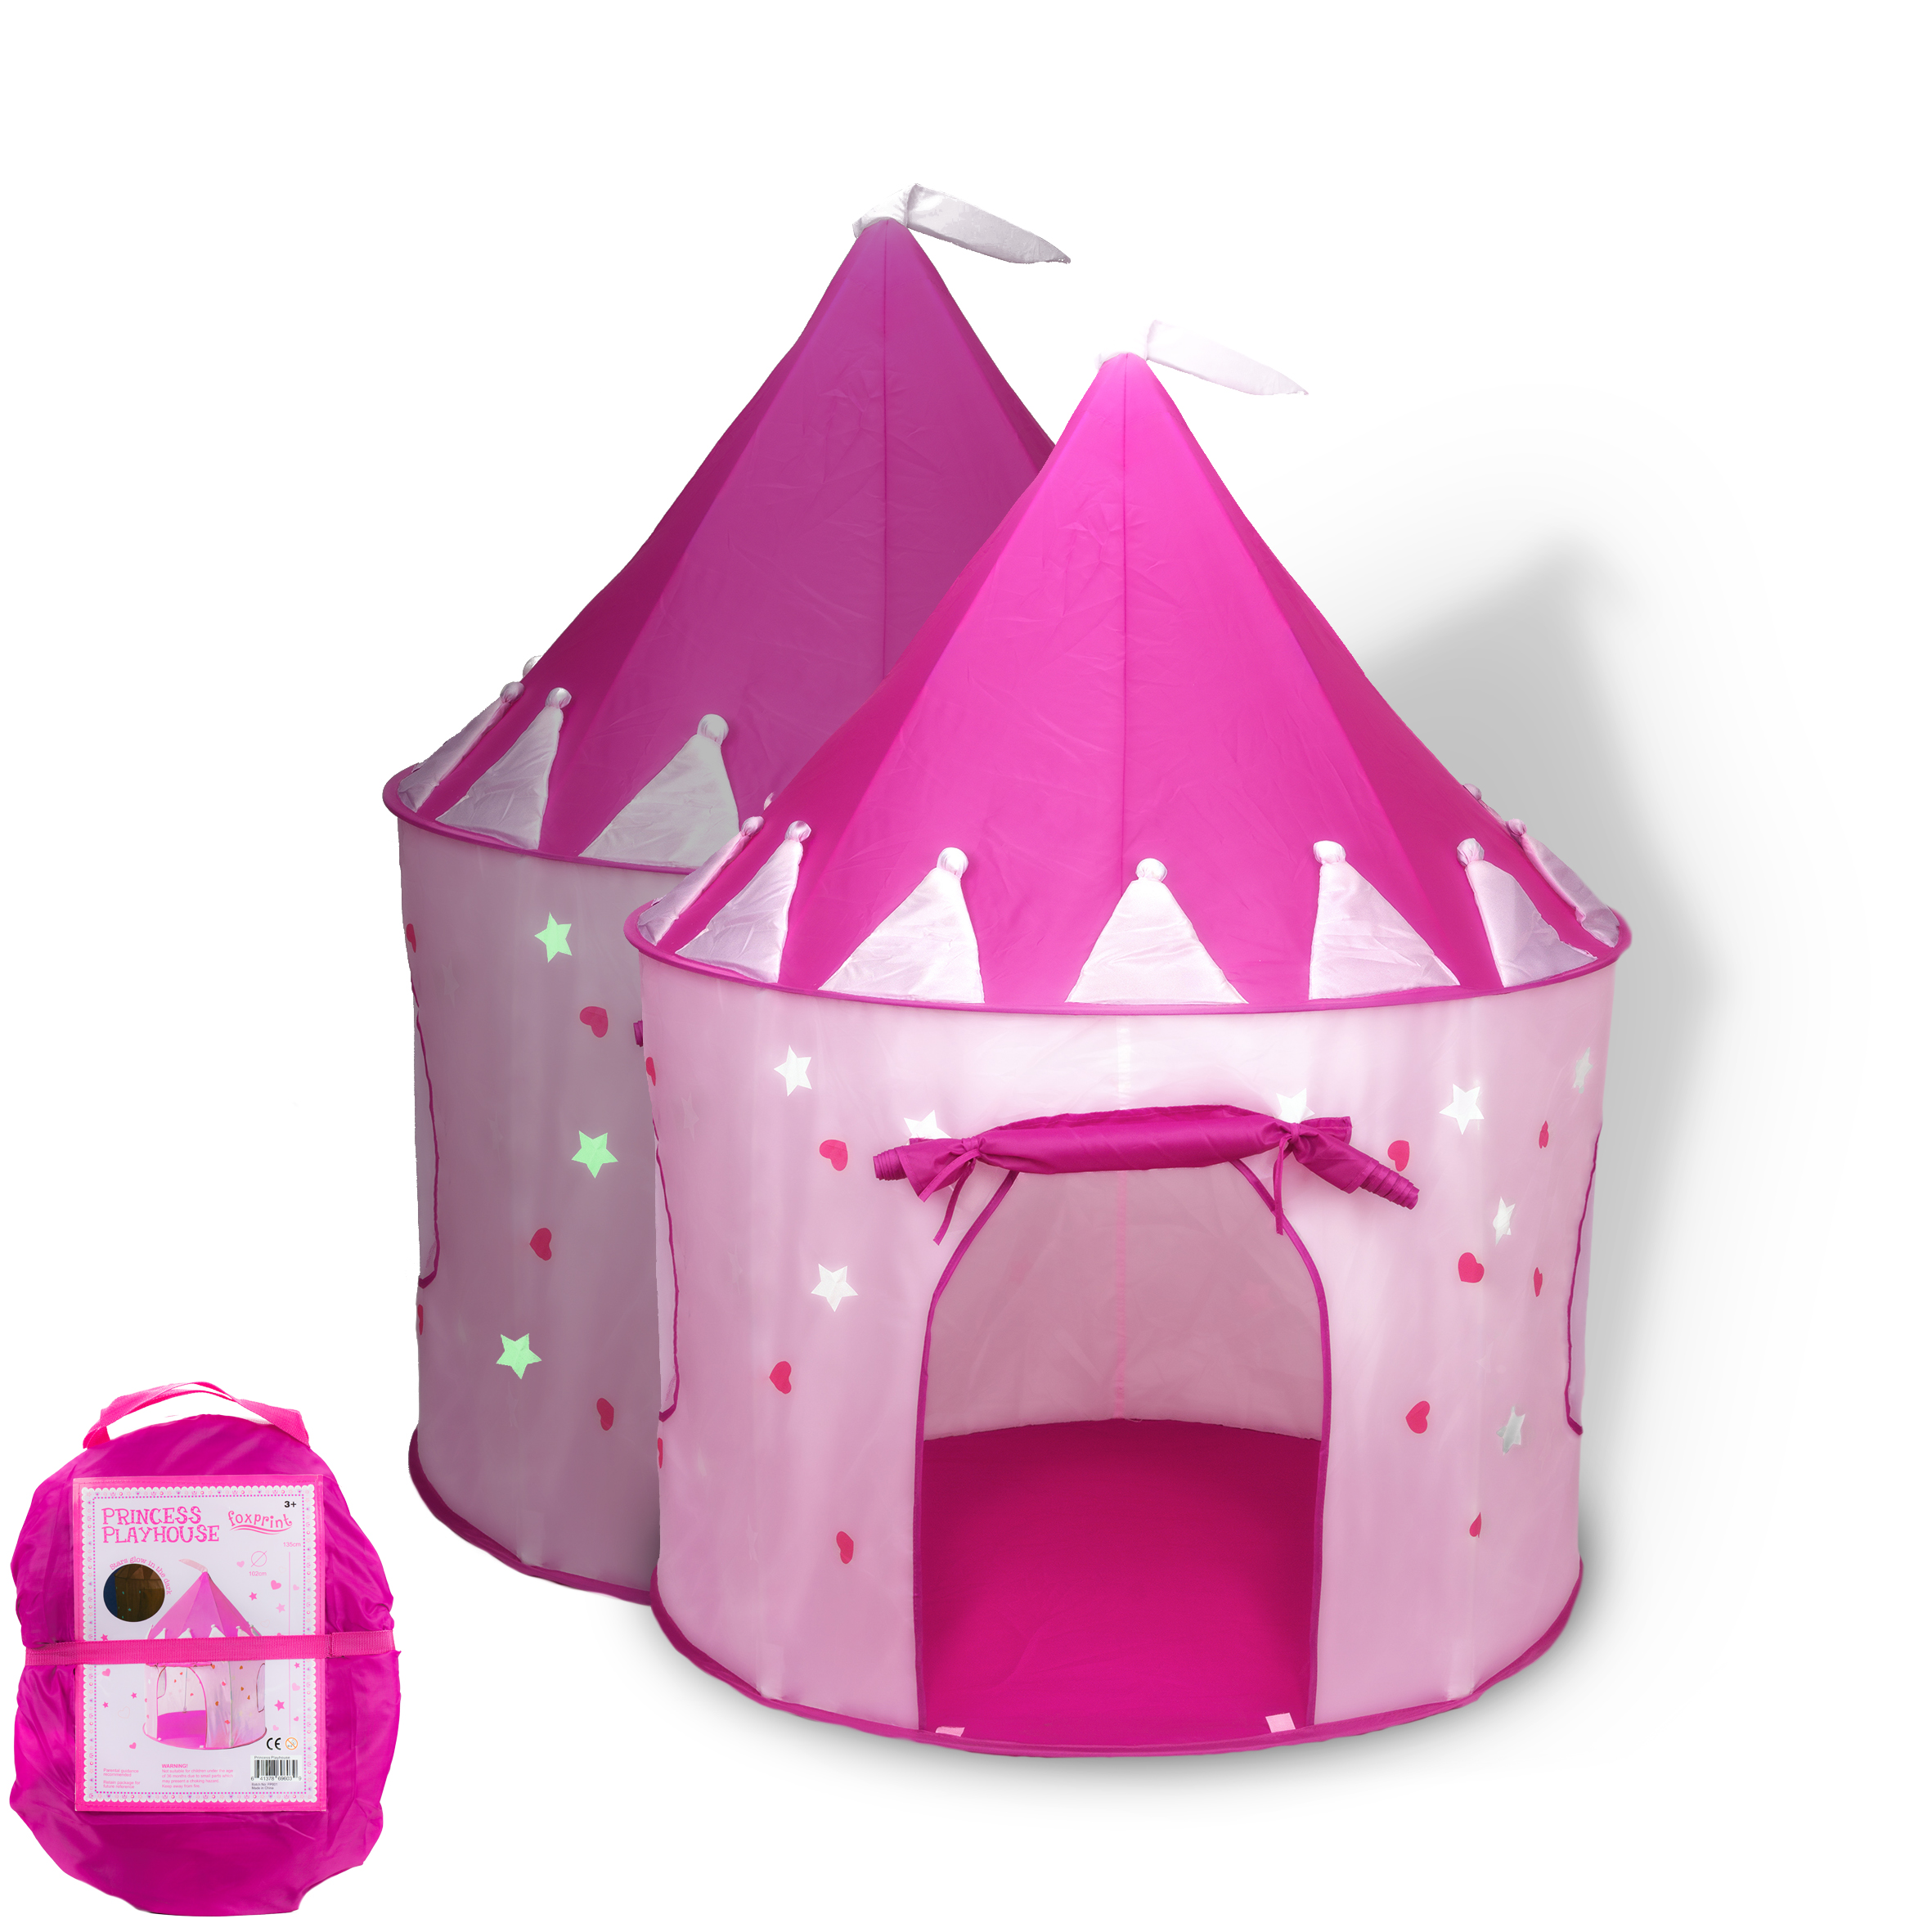 Princess Castle Play Tent with Glow in the Dark Stars convinientlly folds in to a Carrying Case your kids will enjoy this Foldable Pop Up pink play ...  sc 1 st  Walmart & Princess Castle Play Tent with Glow in the Dark Stars ...